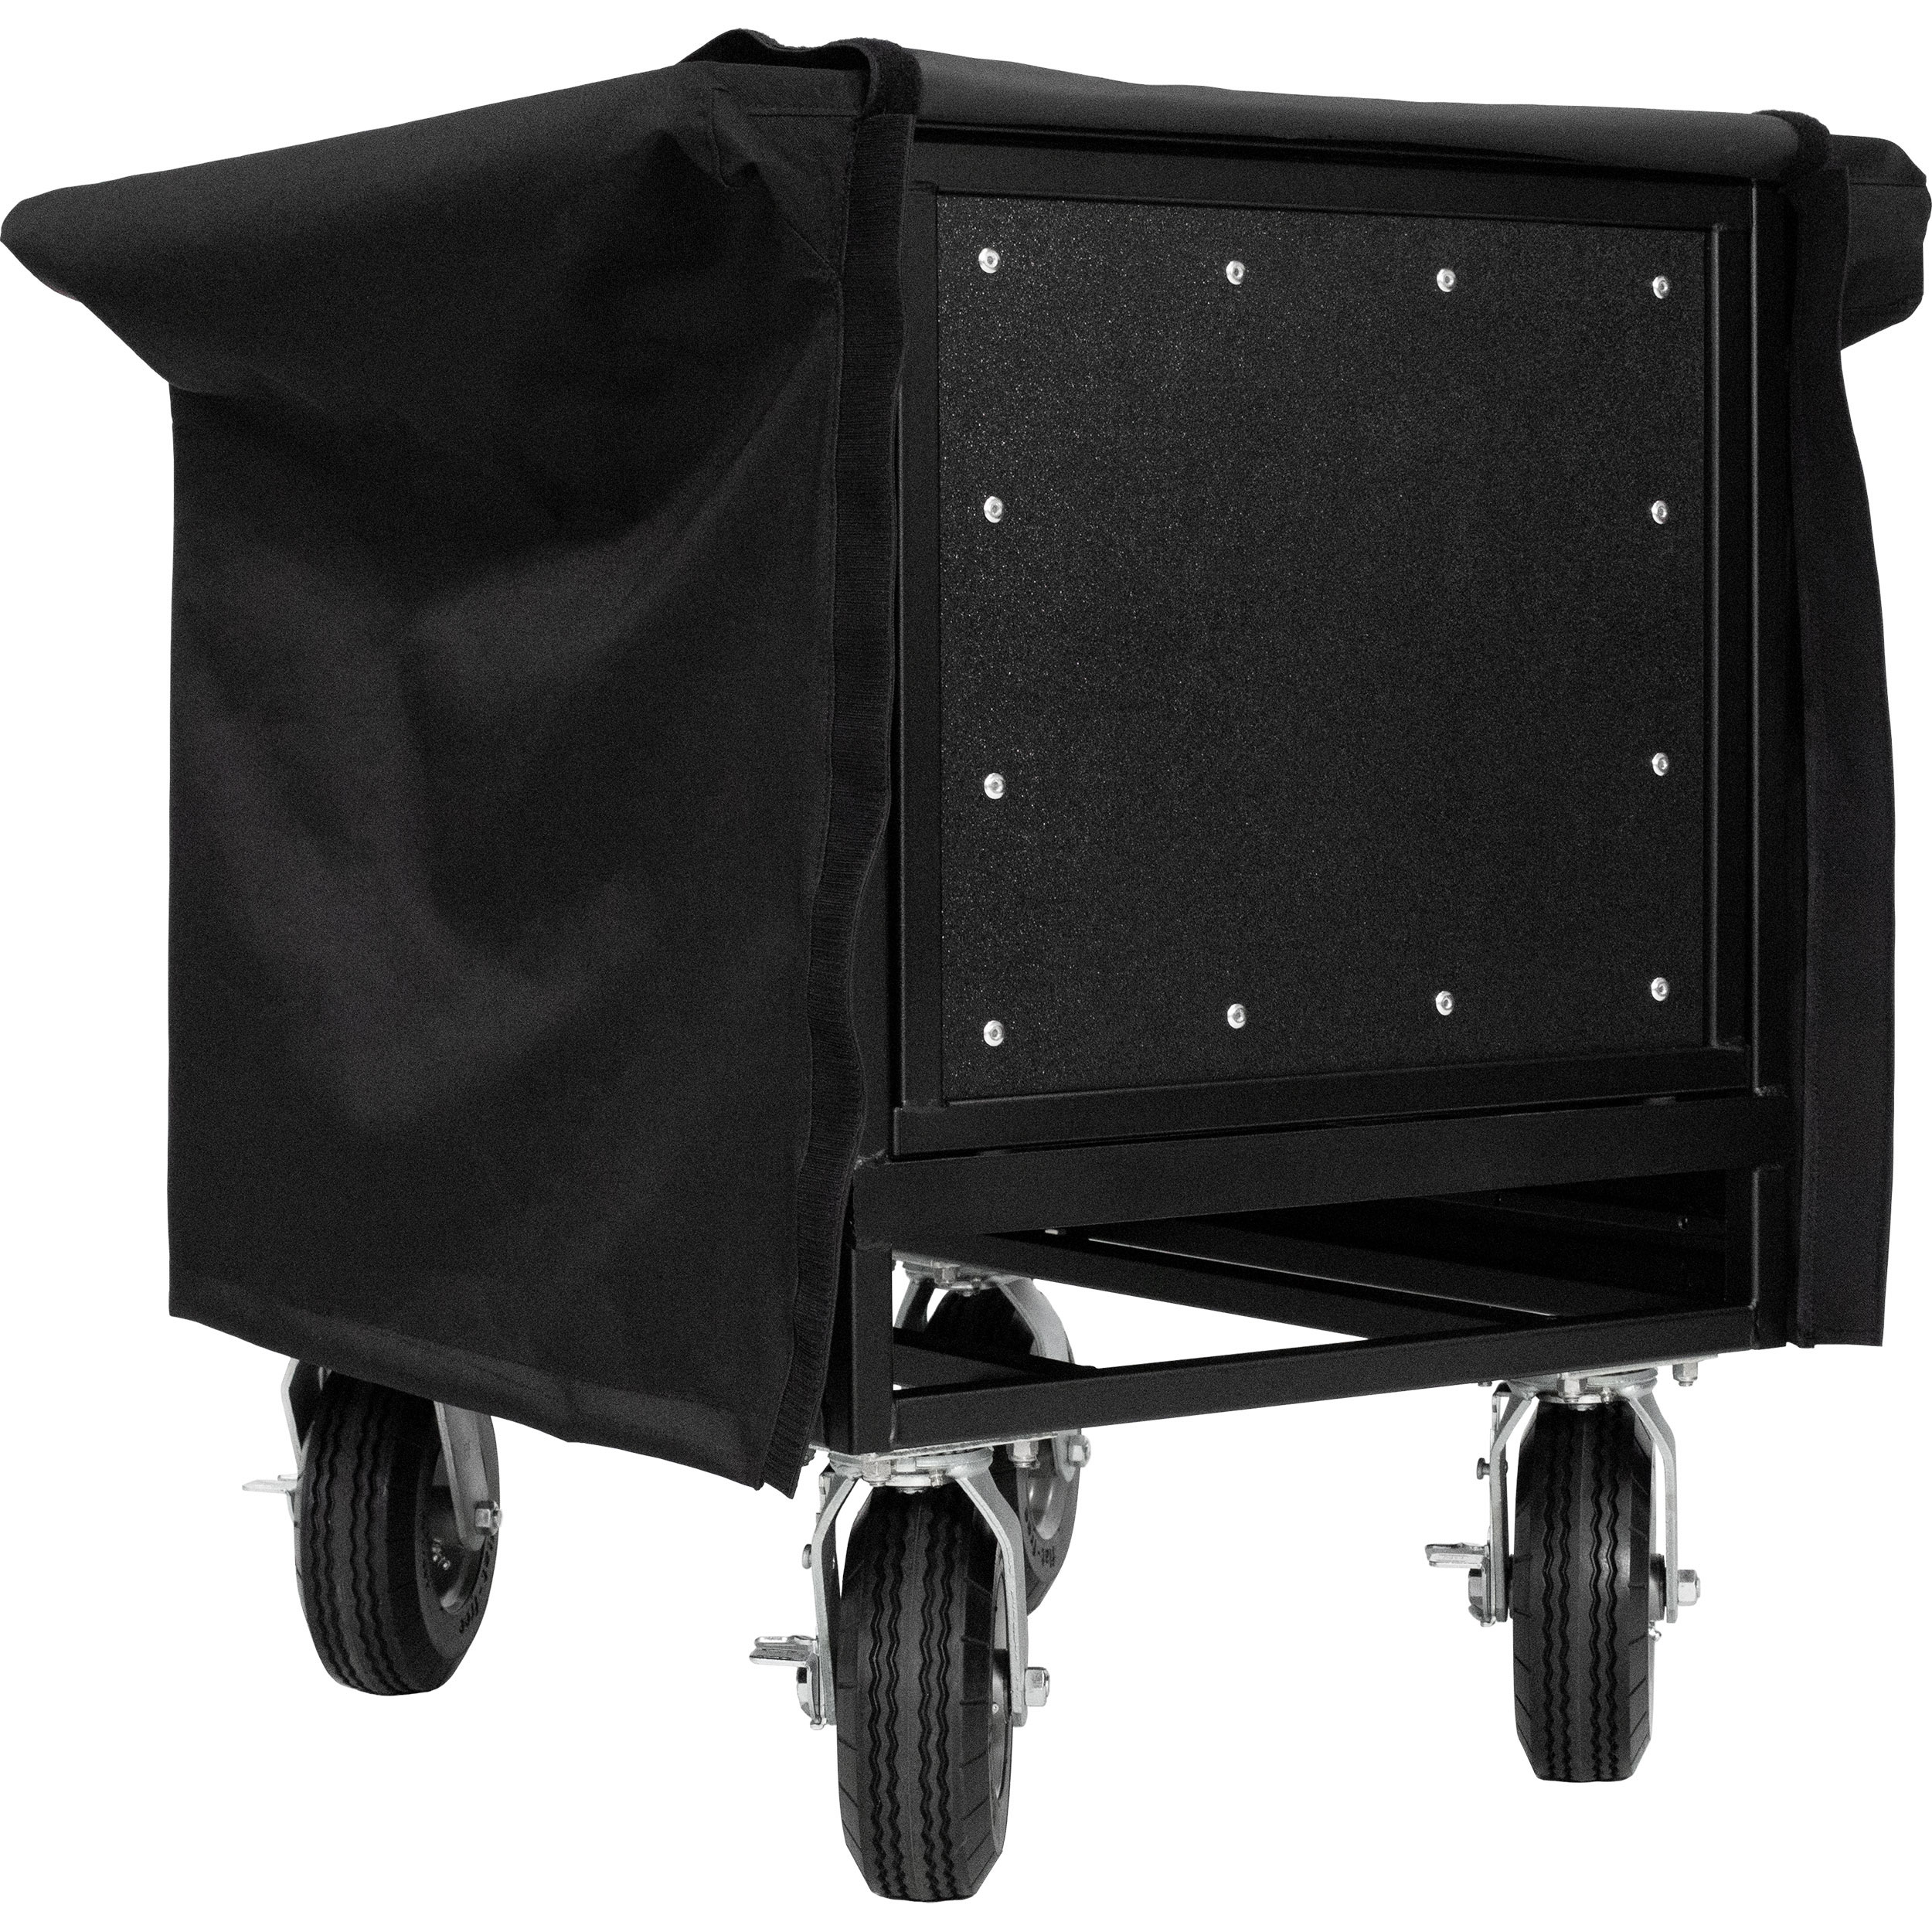 Pageantry Innovations Drop Cover for MC-10 Mixer Cart